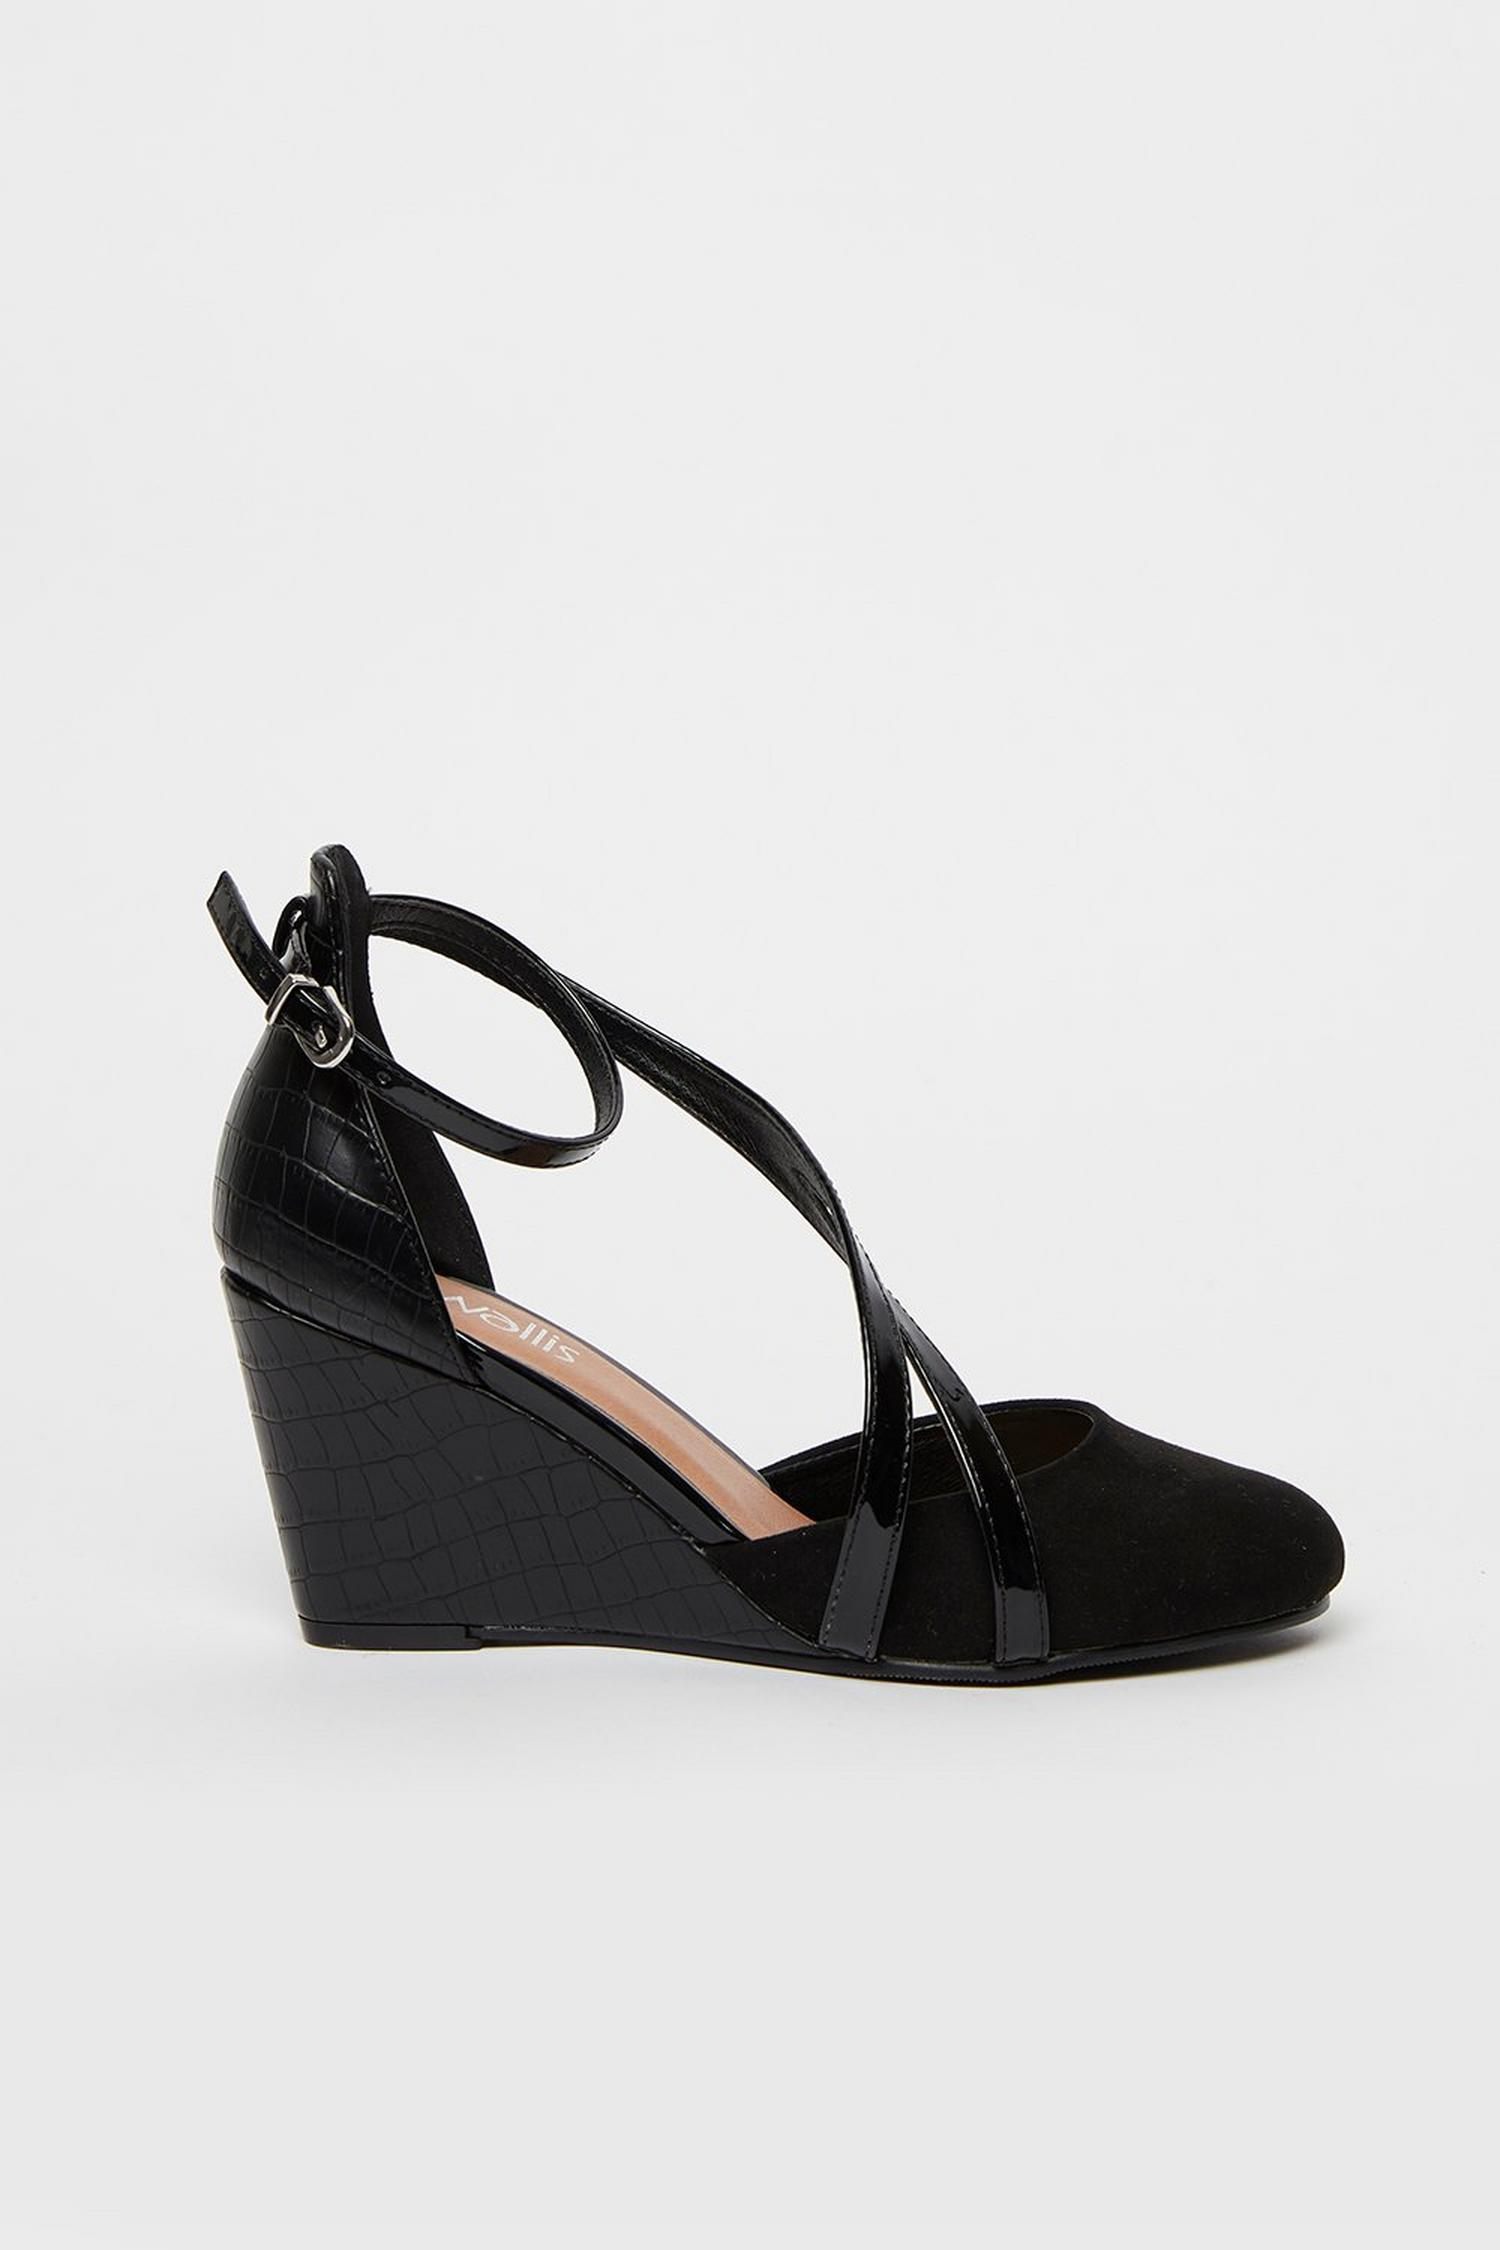 105 Black Double Strap Wedge image number 1